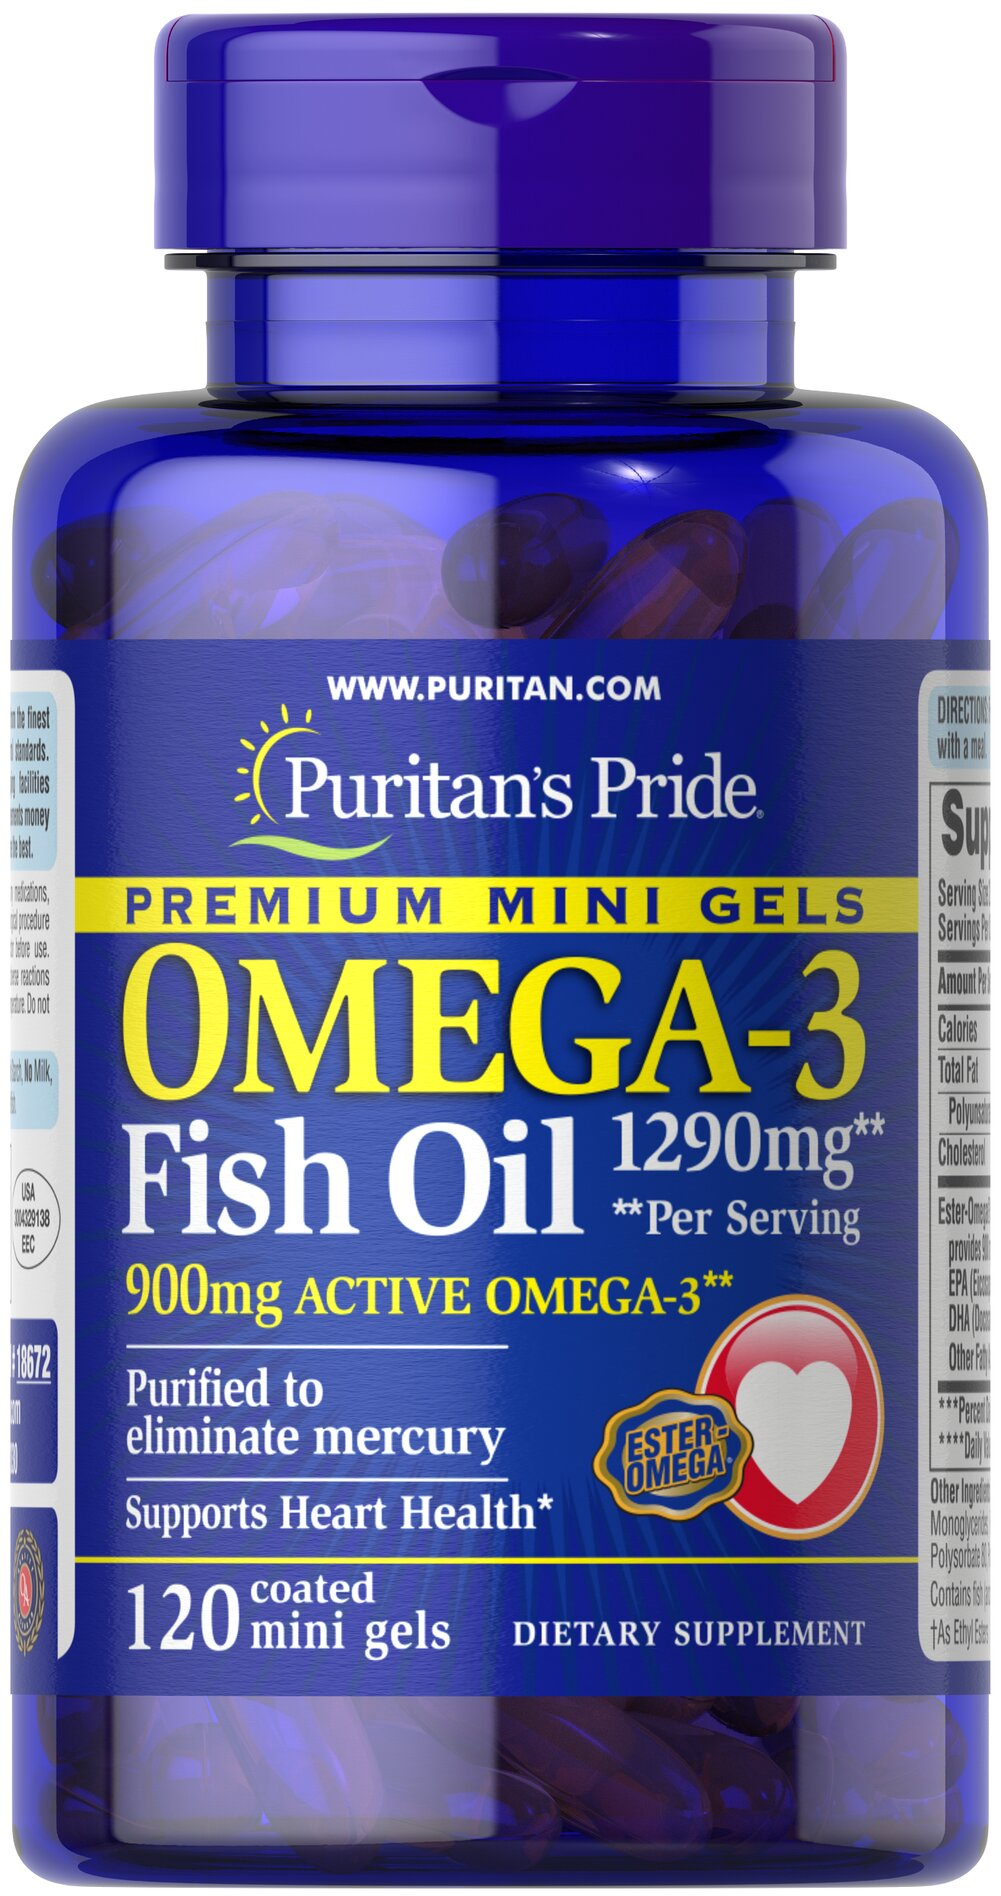 Fish Oil Mini Gels 645 mg <p><strong>Purified to Eliminate Mercury</strong></p><p>Enhanced with 900 mg of active Omega-3 per serving</p><p>Mercury free mini gels are coated to prevent fishy aftertaste</p> 120 Coated Softgels 645 mg $42.29